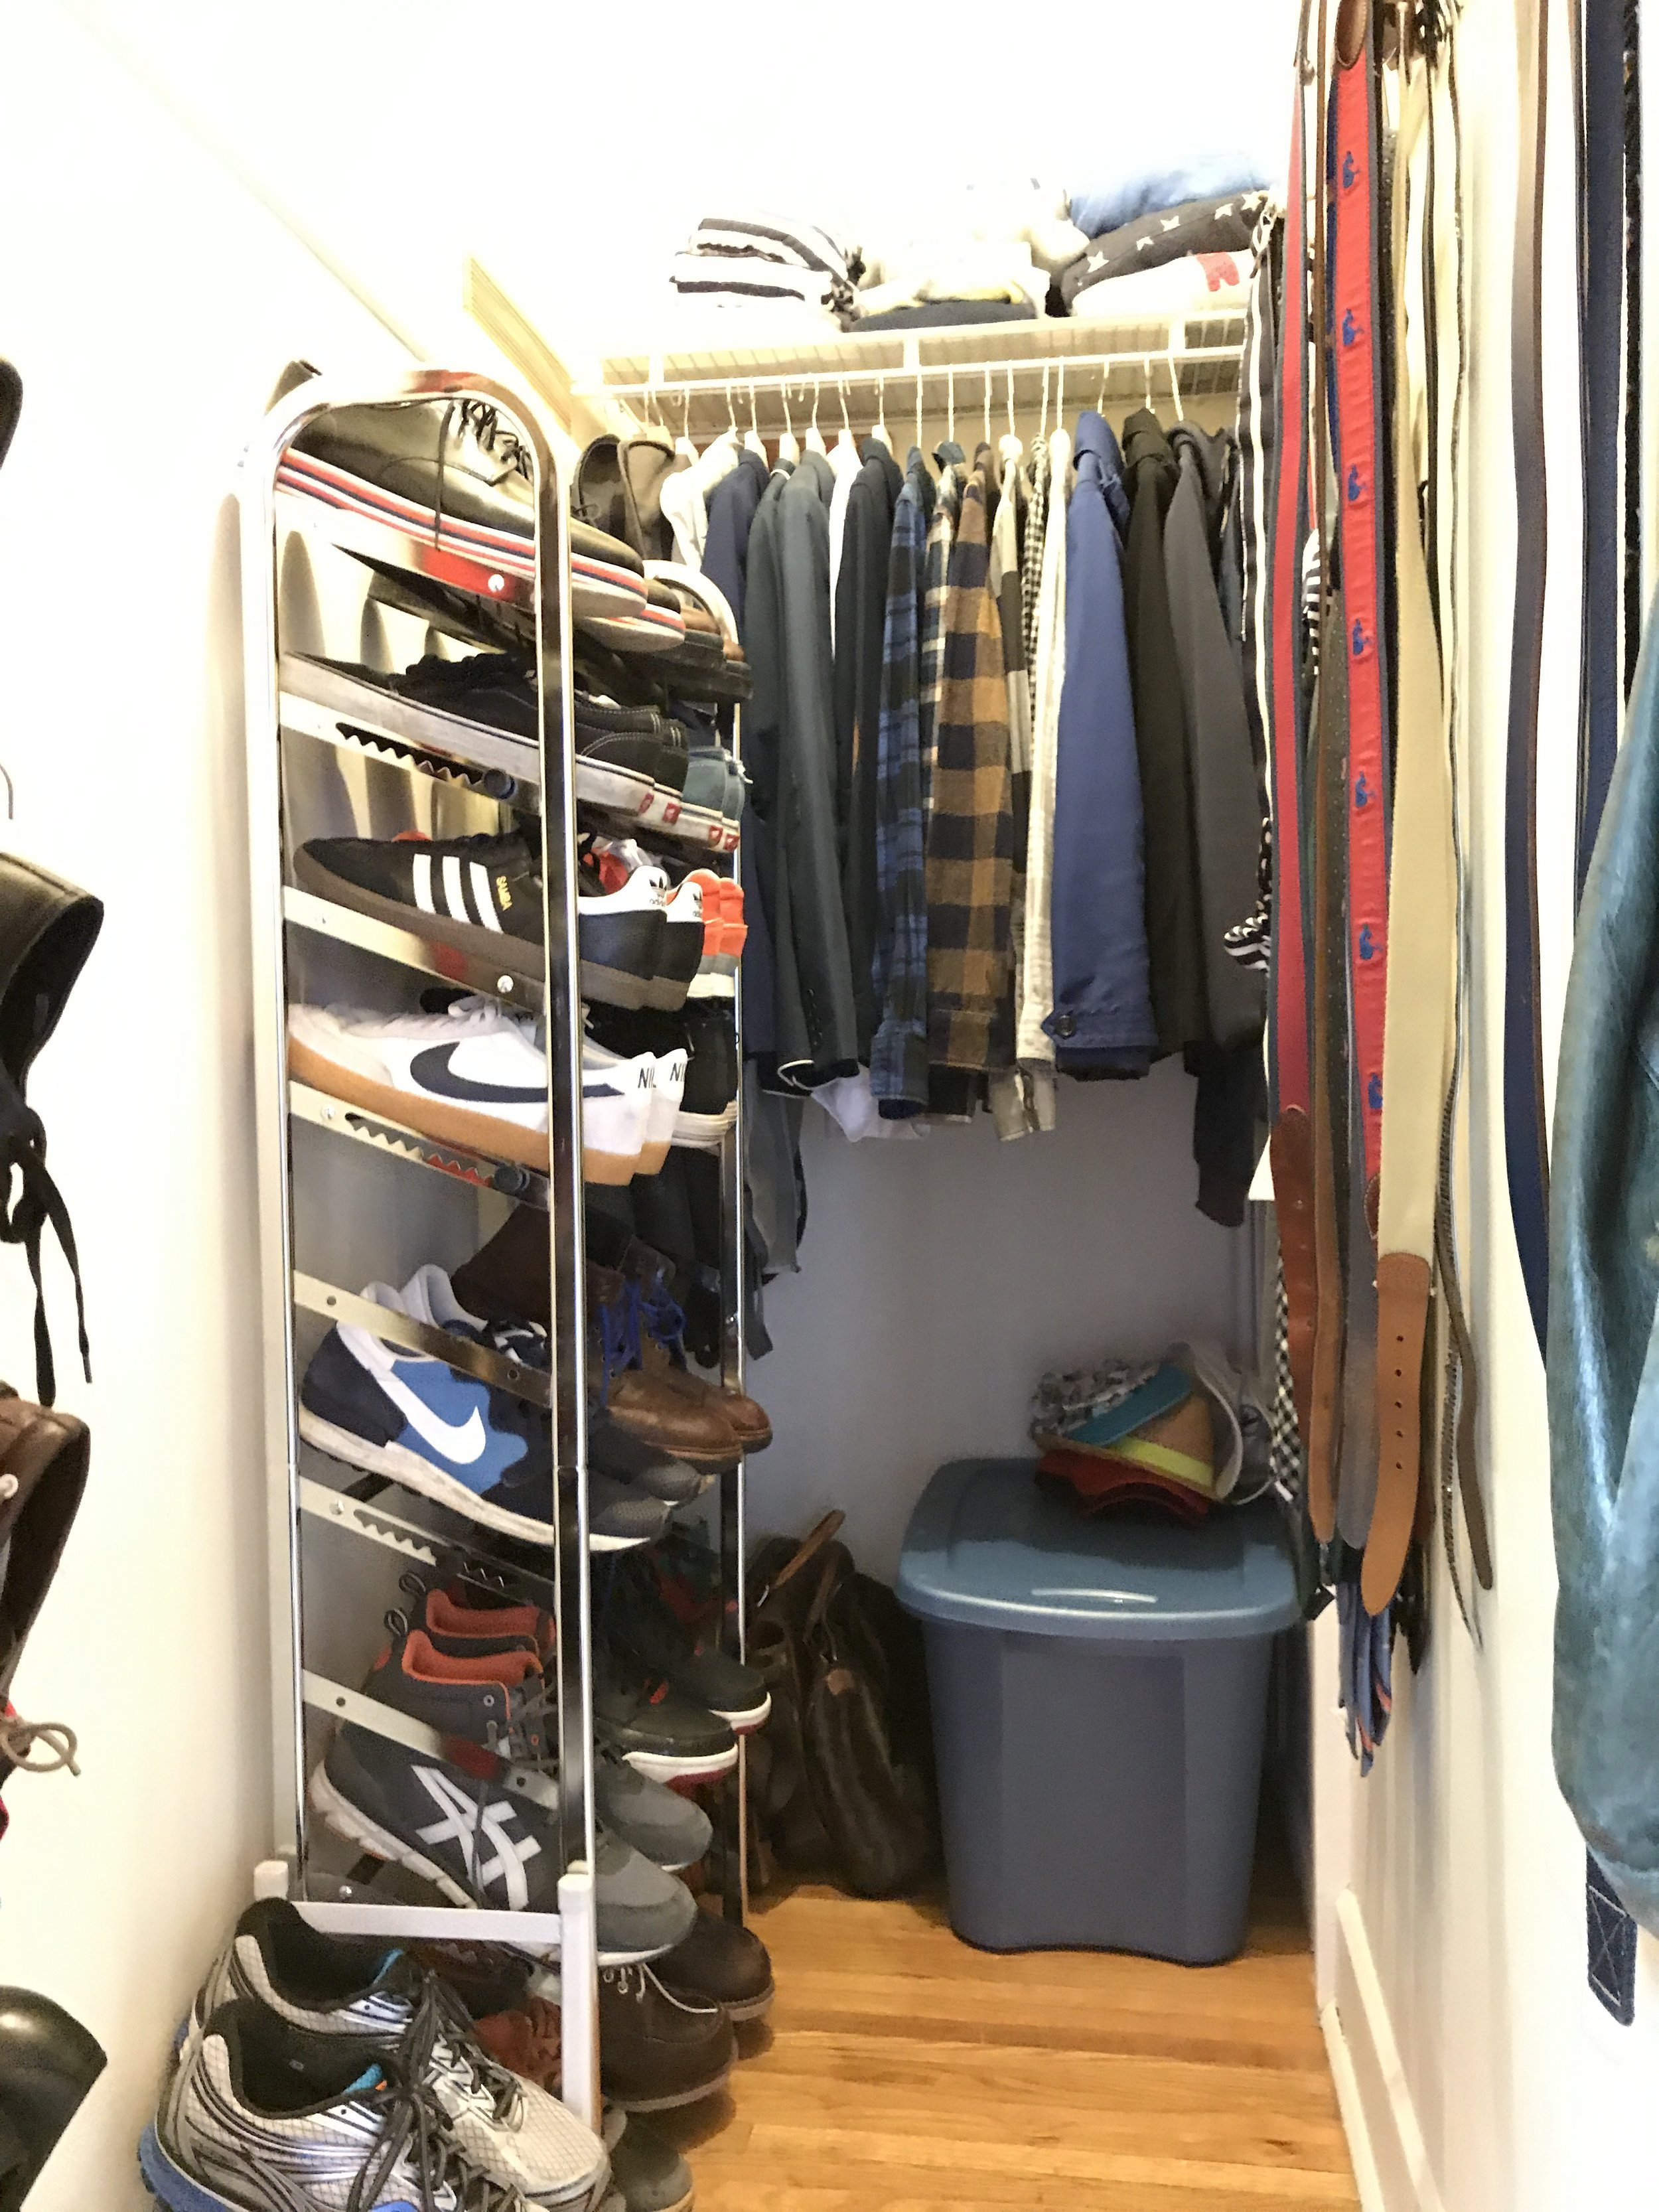 My 2nd closet in the new house.